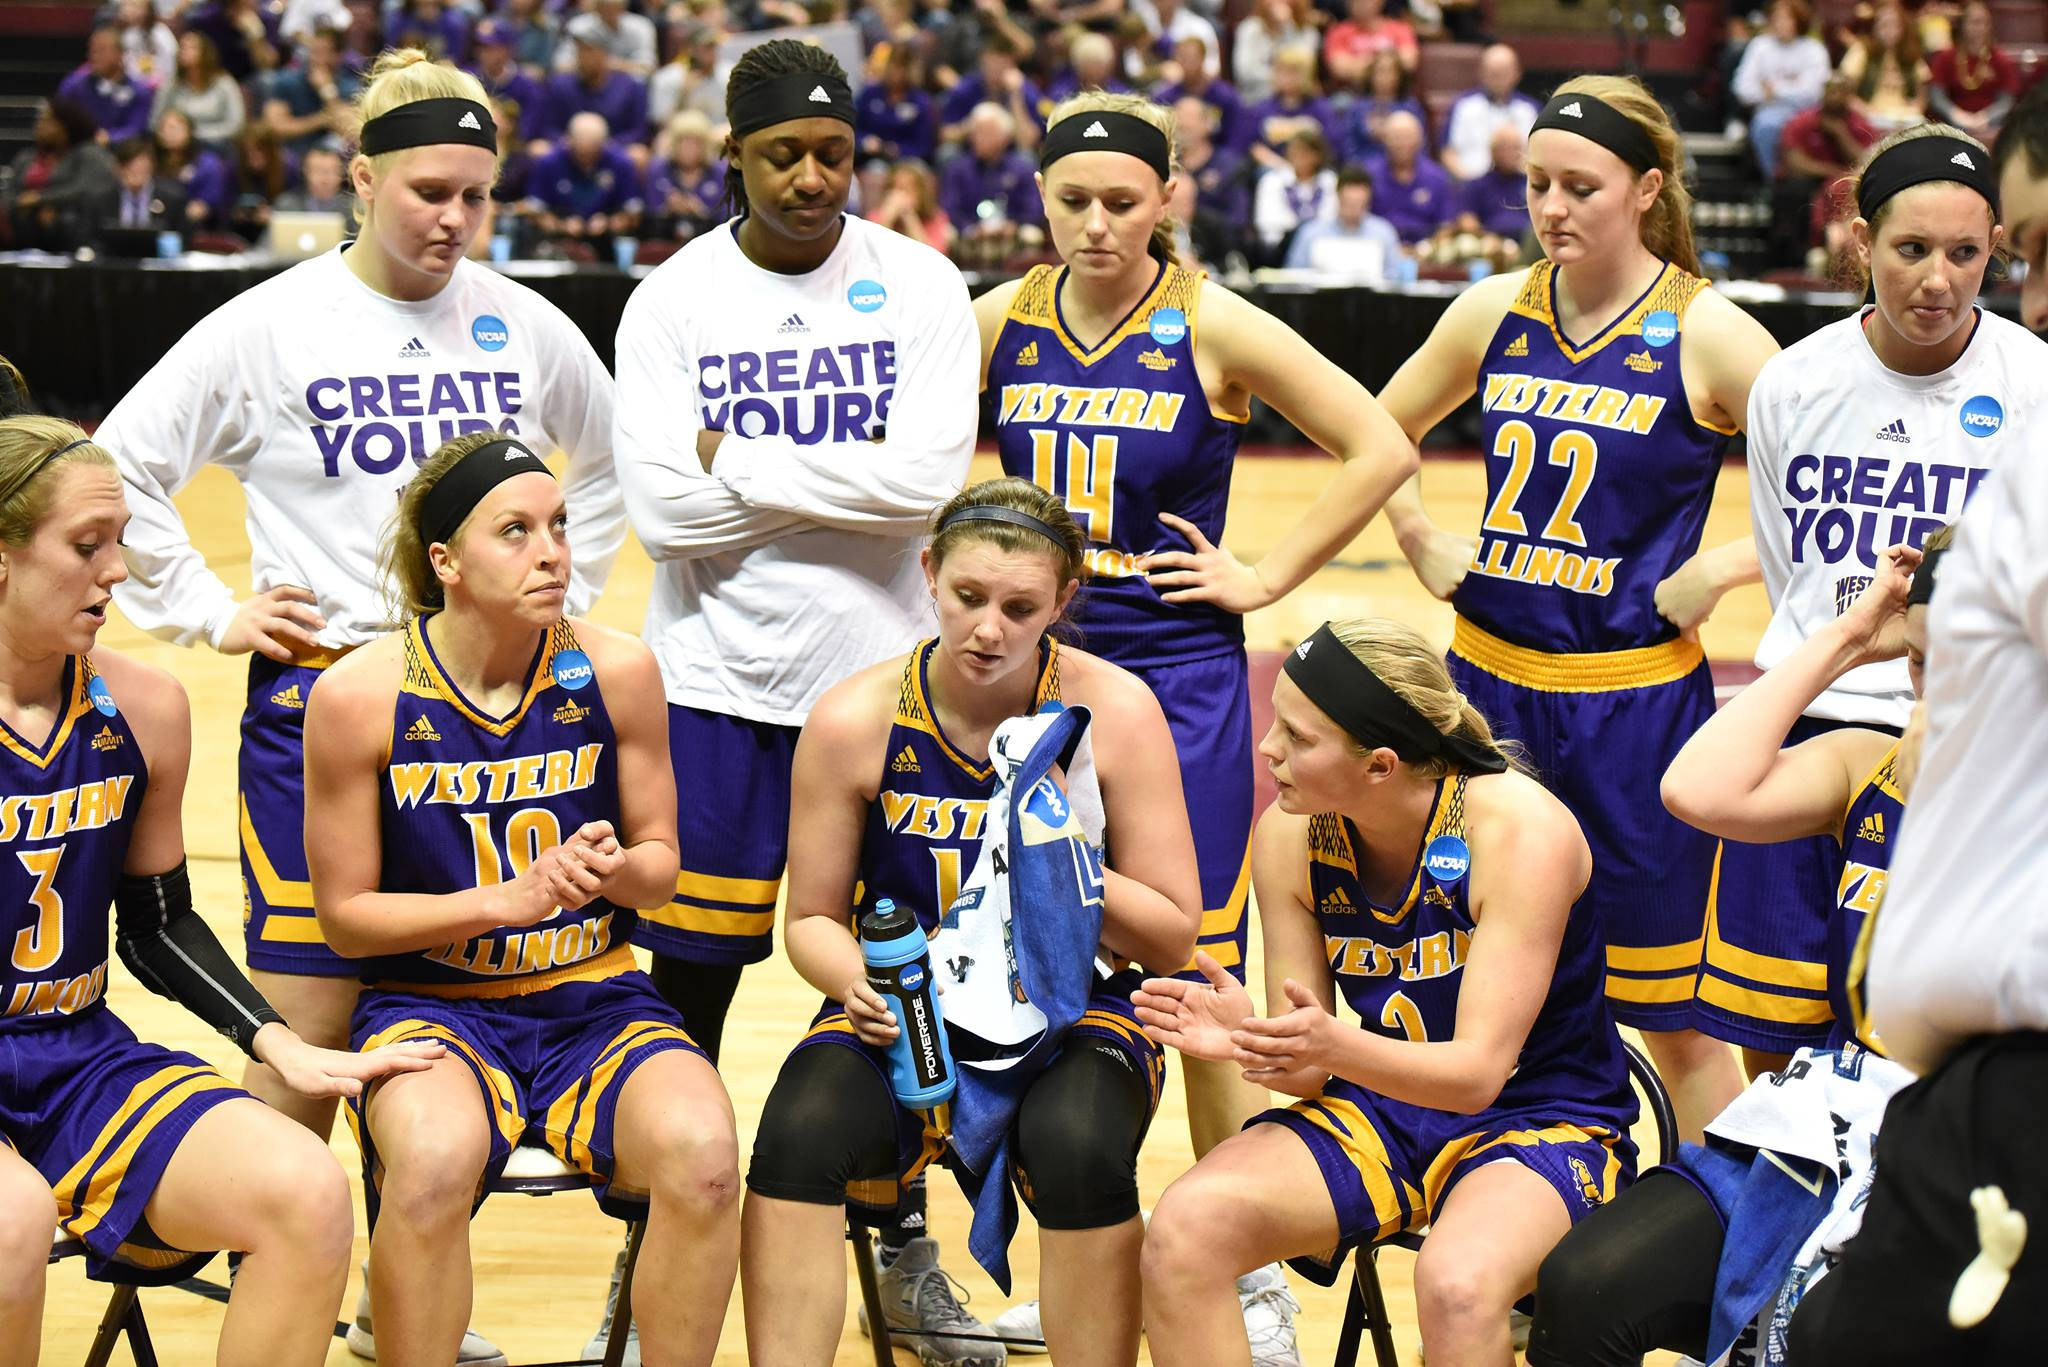 The Lady Leathernecks huddle together with women's basketball head coach JD Gravina to talk strategy during the NCAA Tournament as Western Illinois takes on 3-seed Florida Seminoles on March 17.